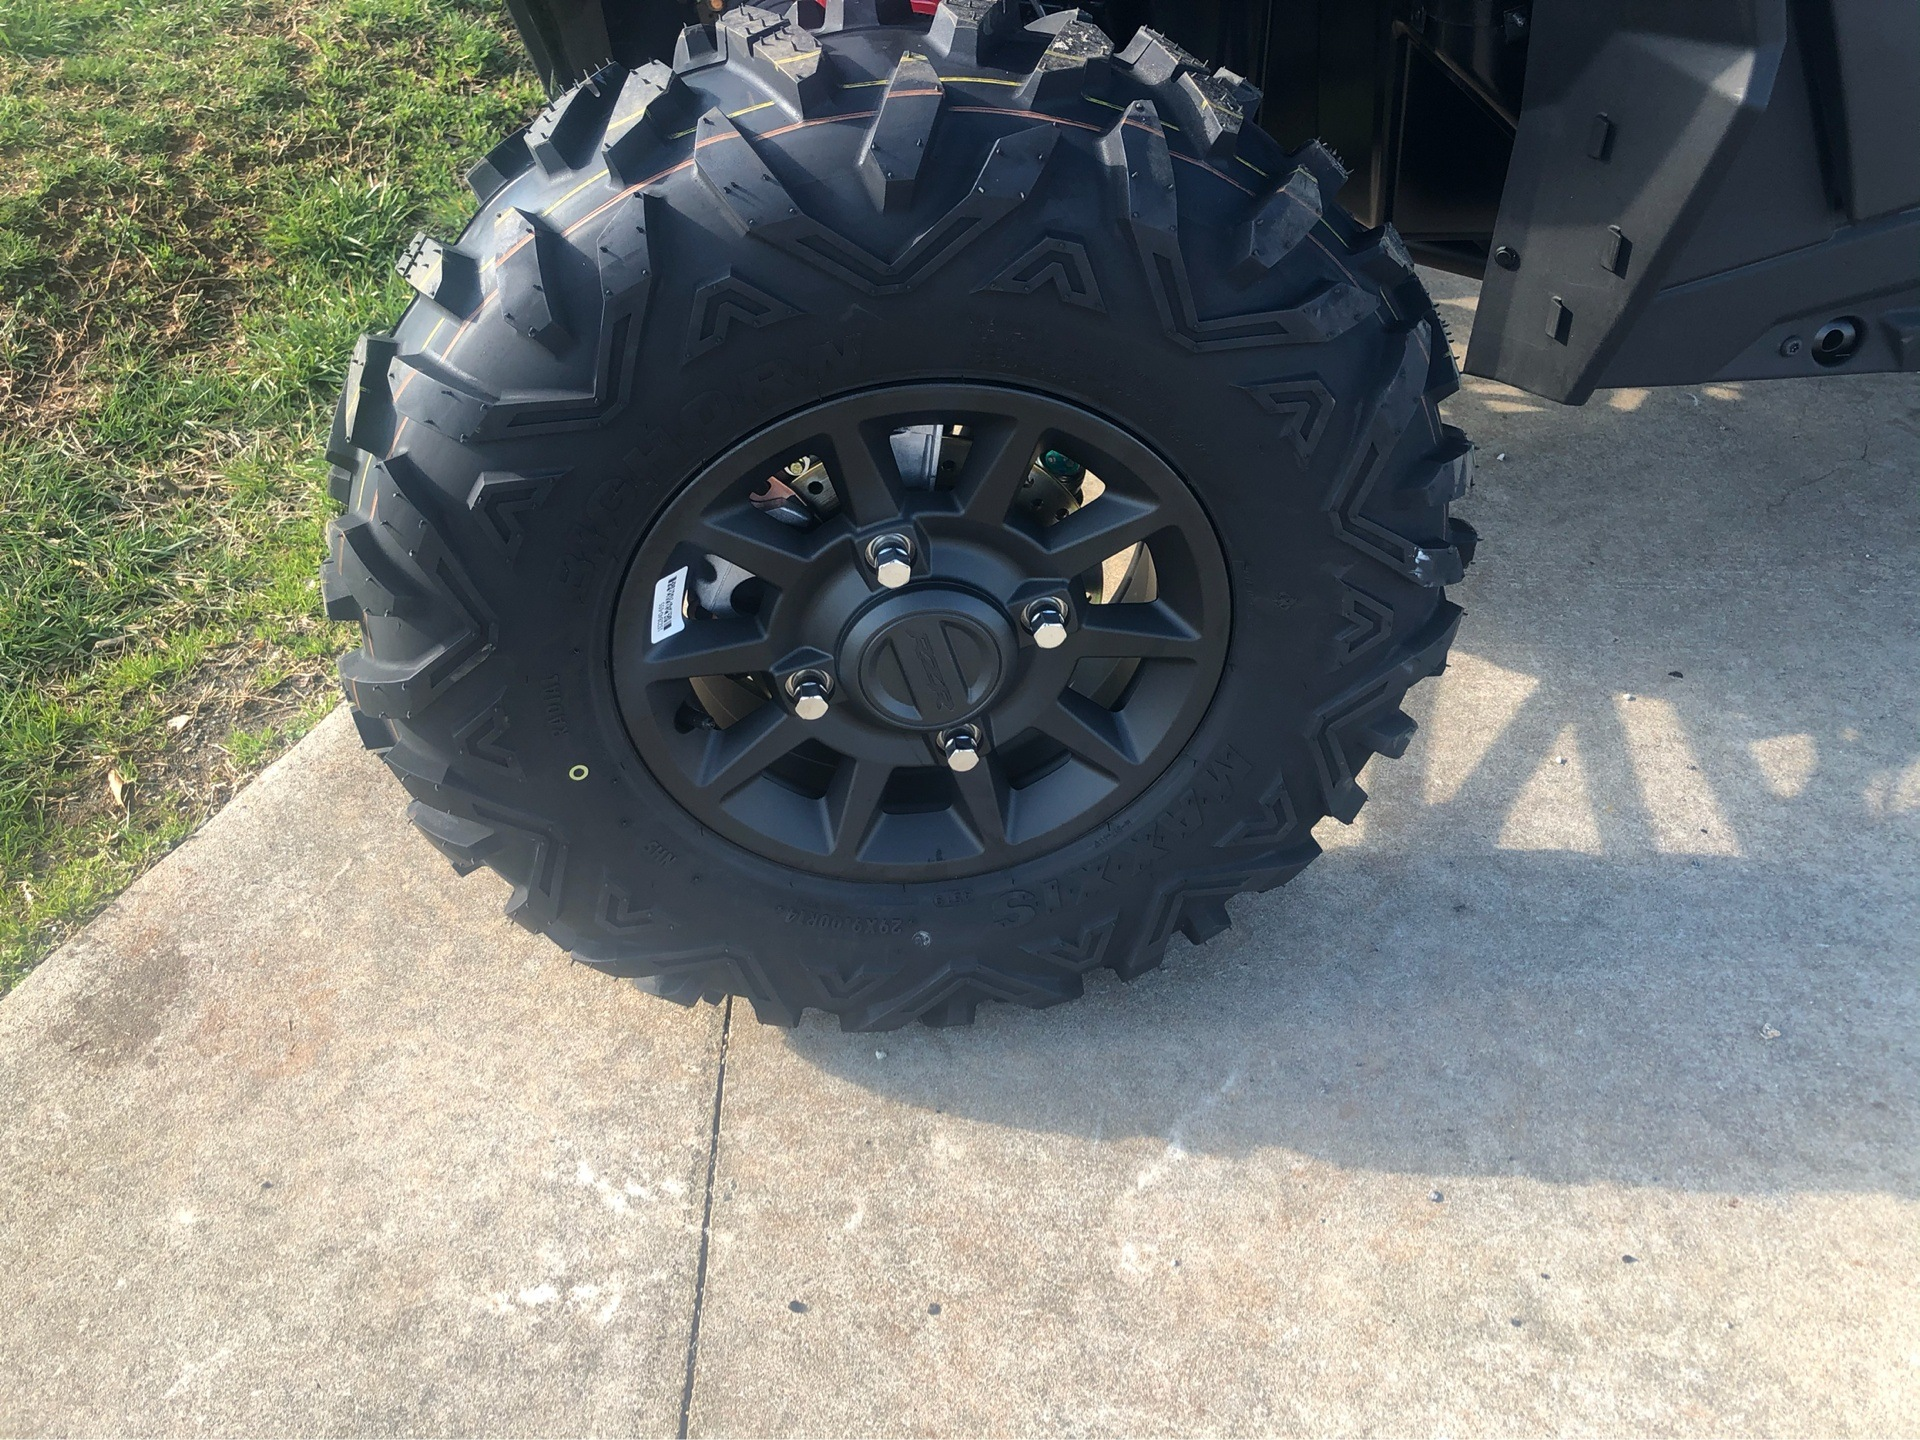 2020 Polaris RZR XP 1000 Premium in Statesville, North Carolina - Photo 3